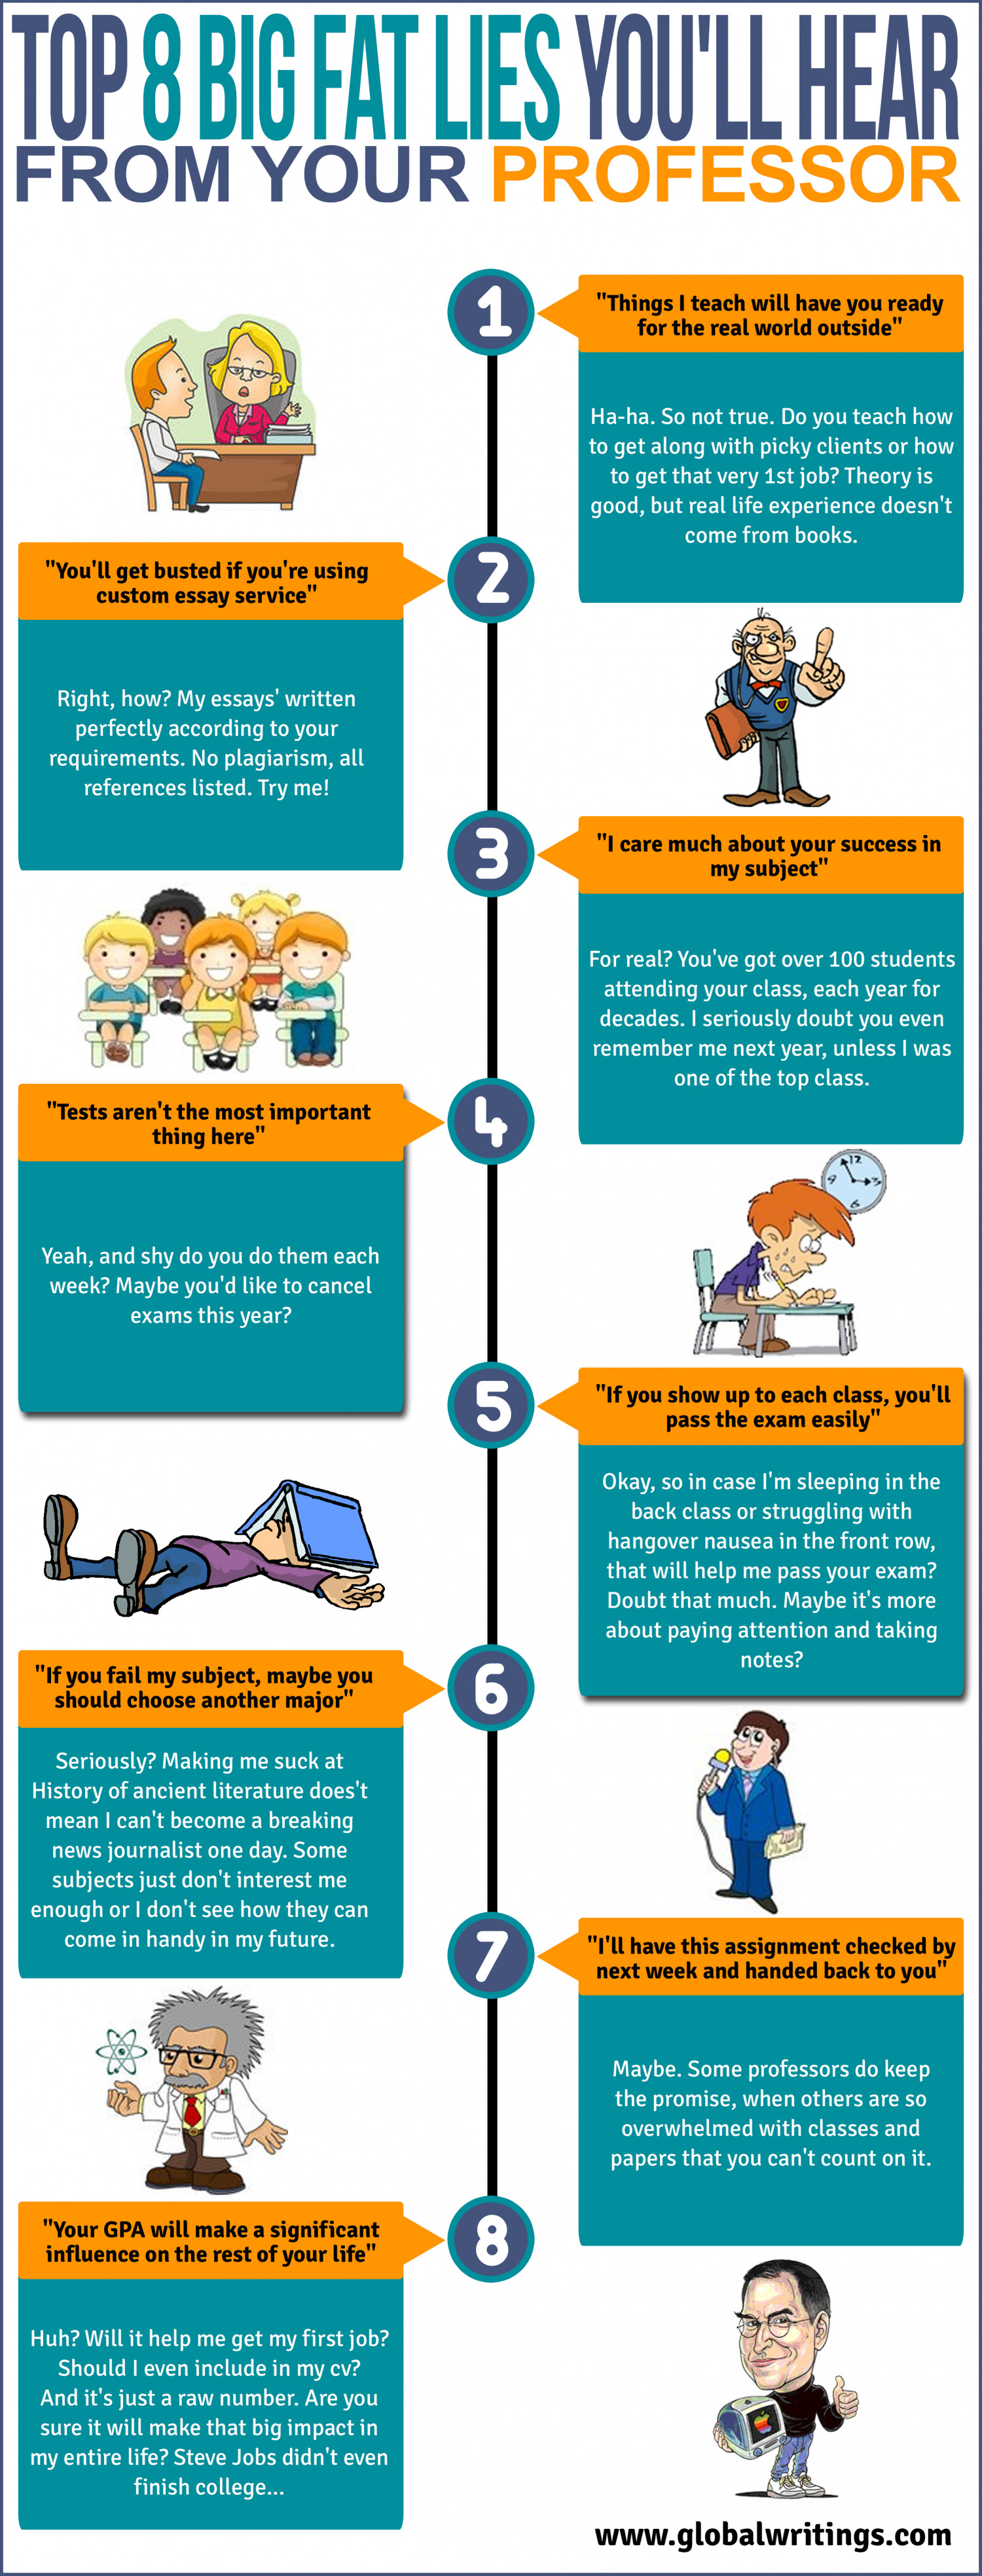 Top 8 Big Fat Lies You'll Hear From Your Professor Infographic